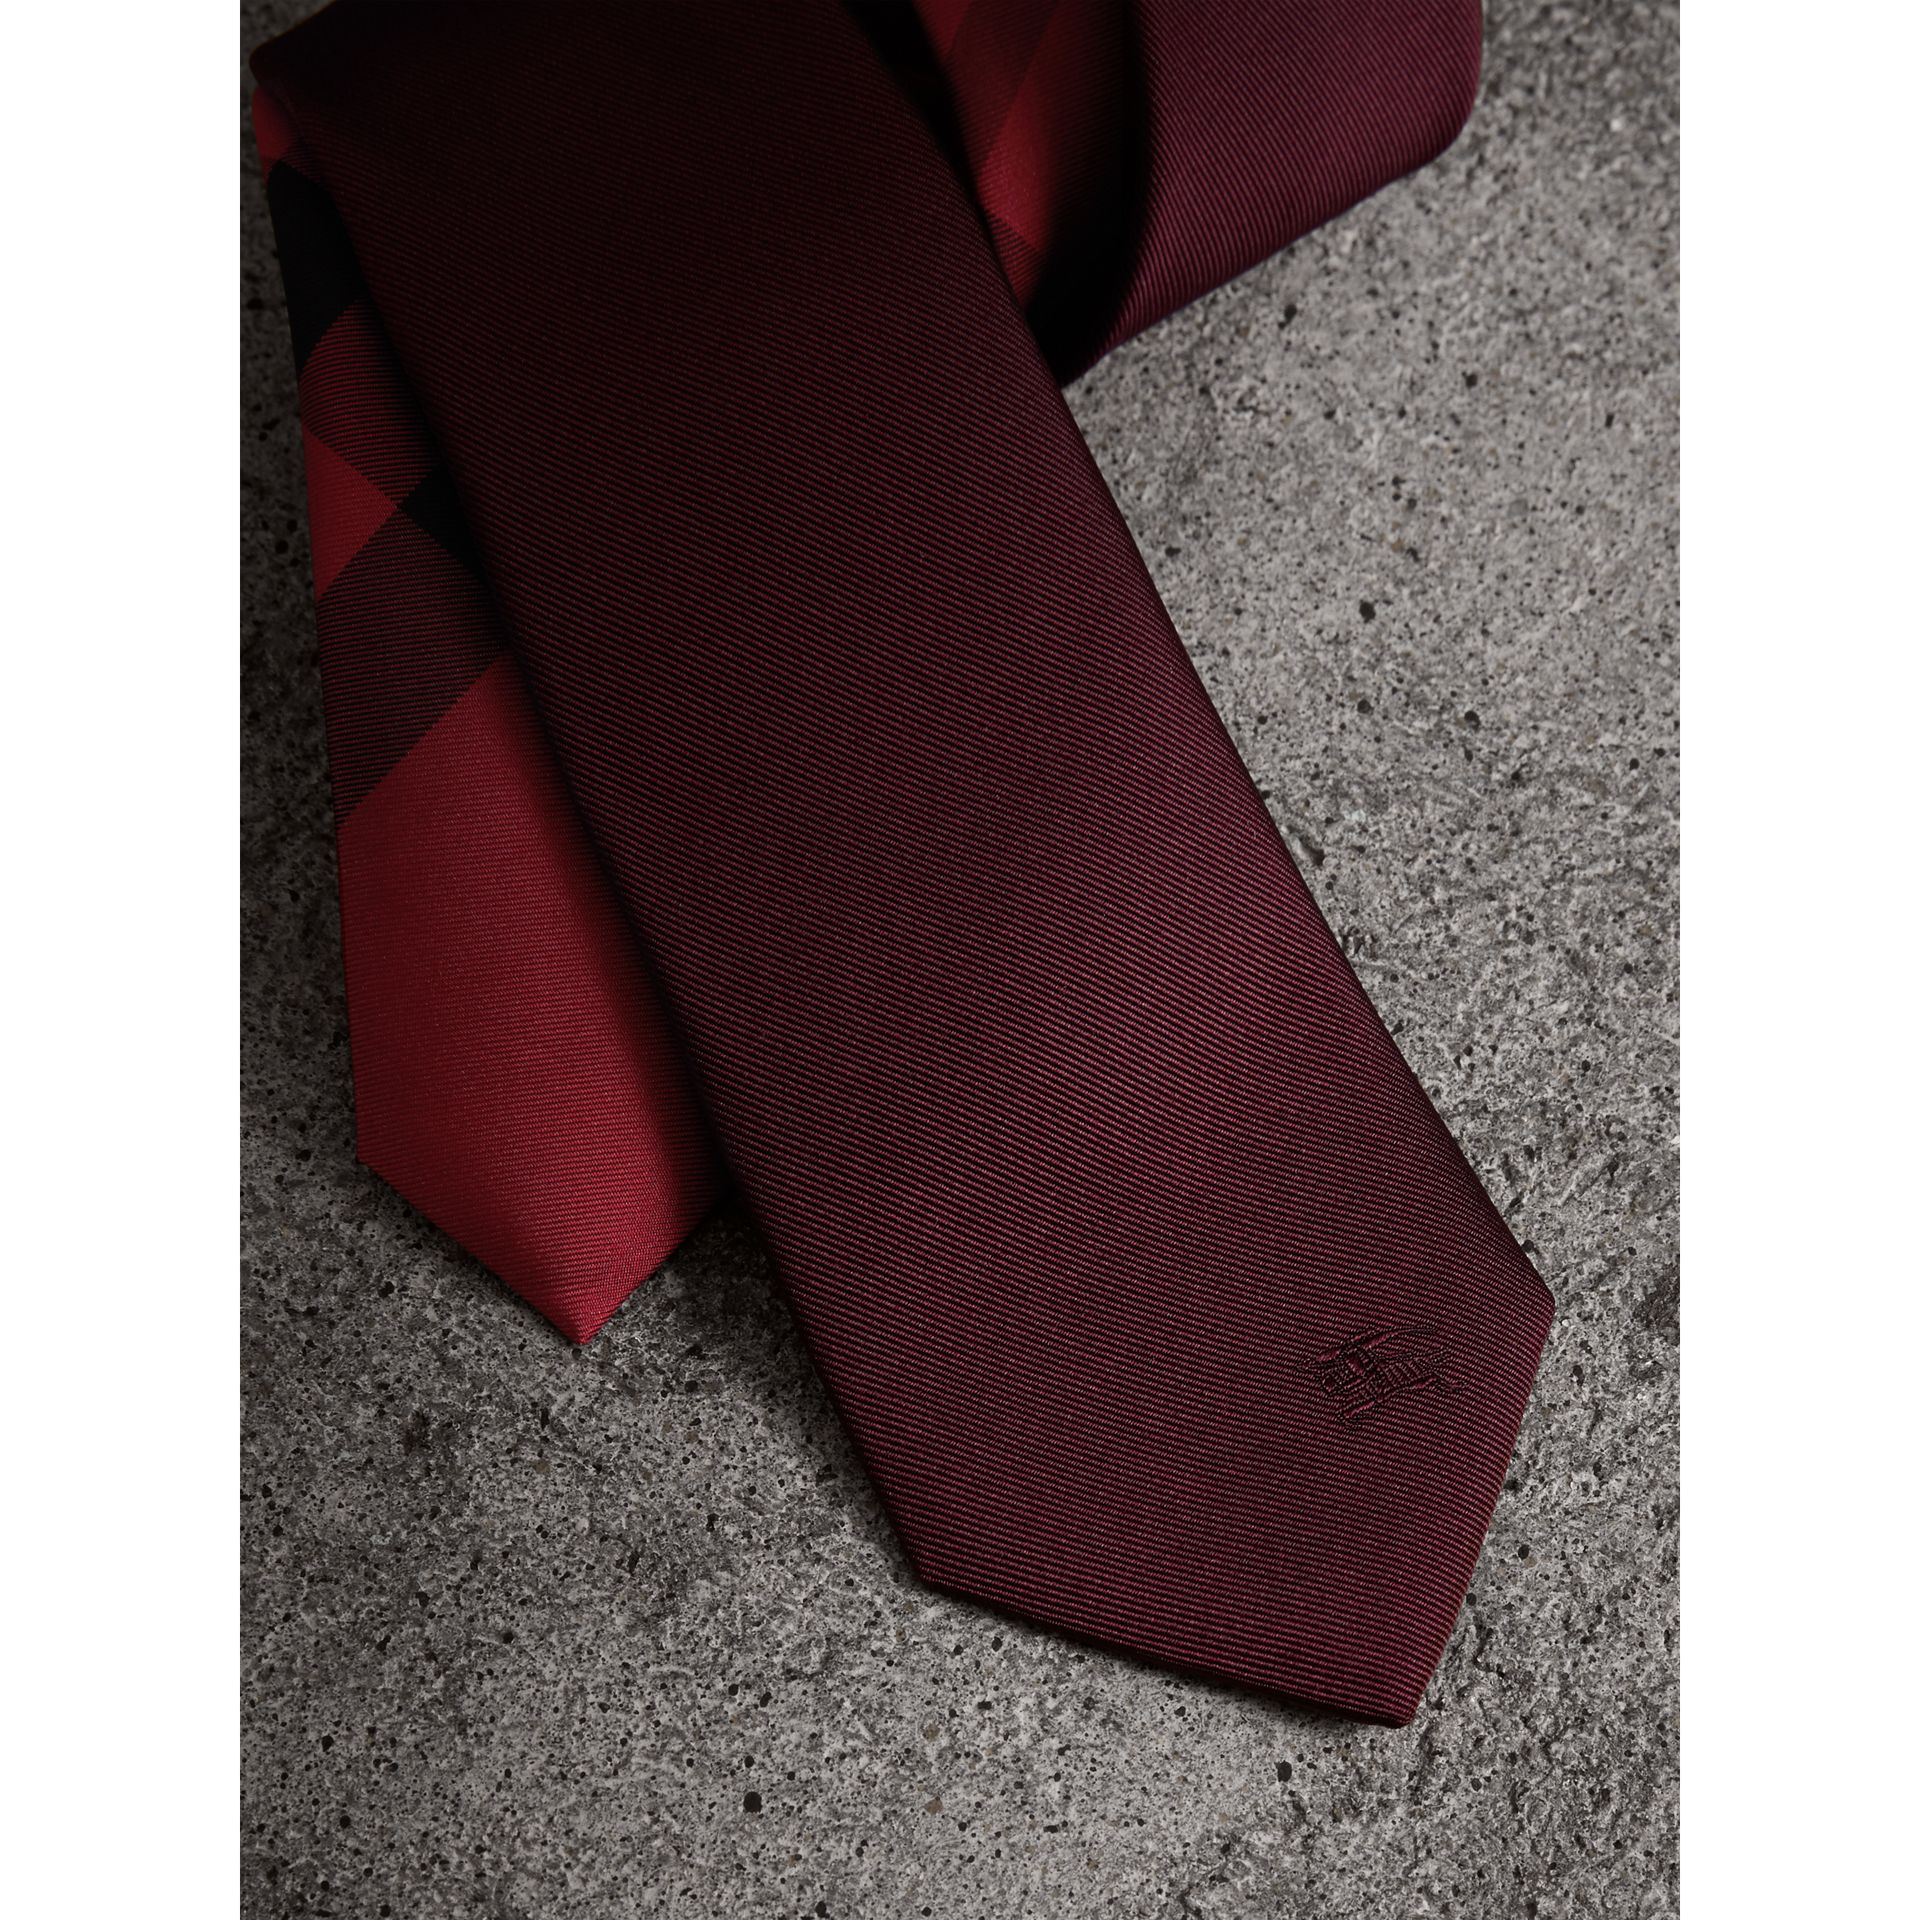 Slim Cut Check Silk Twill Tie in Mahogany Red - Men | Burberry United Kingdom - gallery image 2